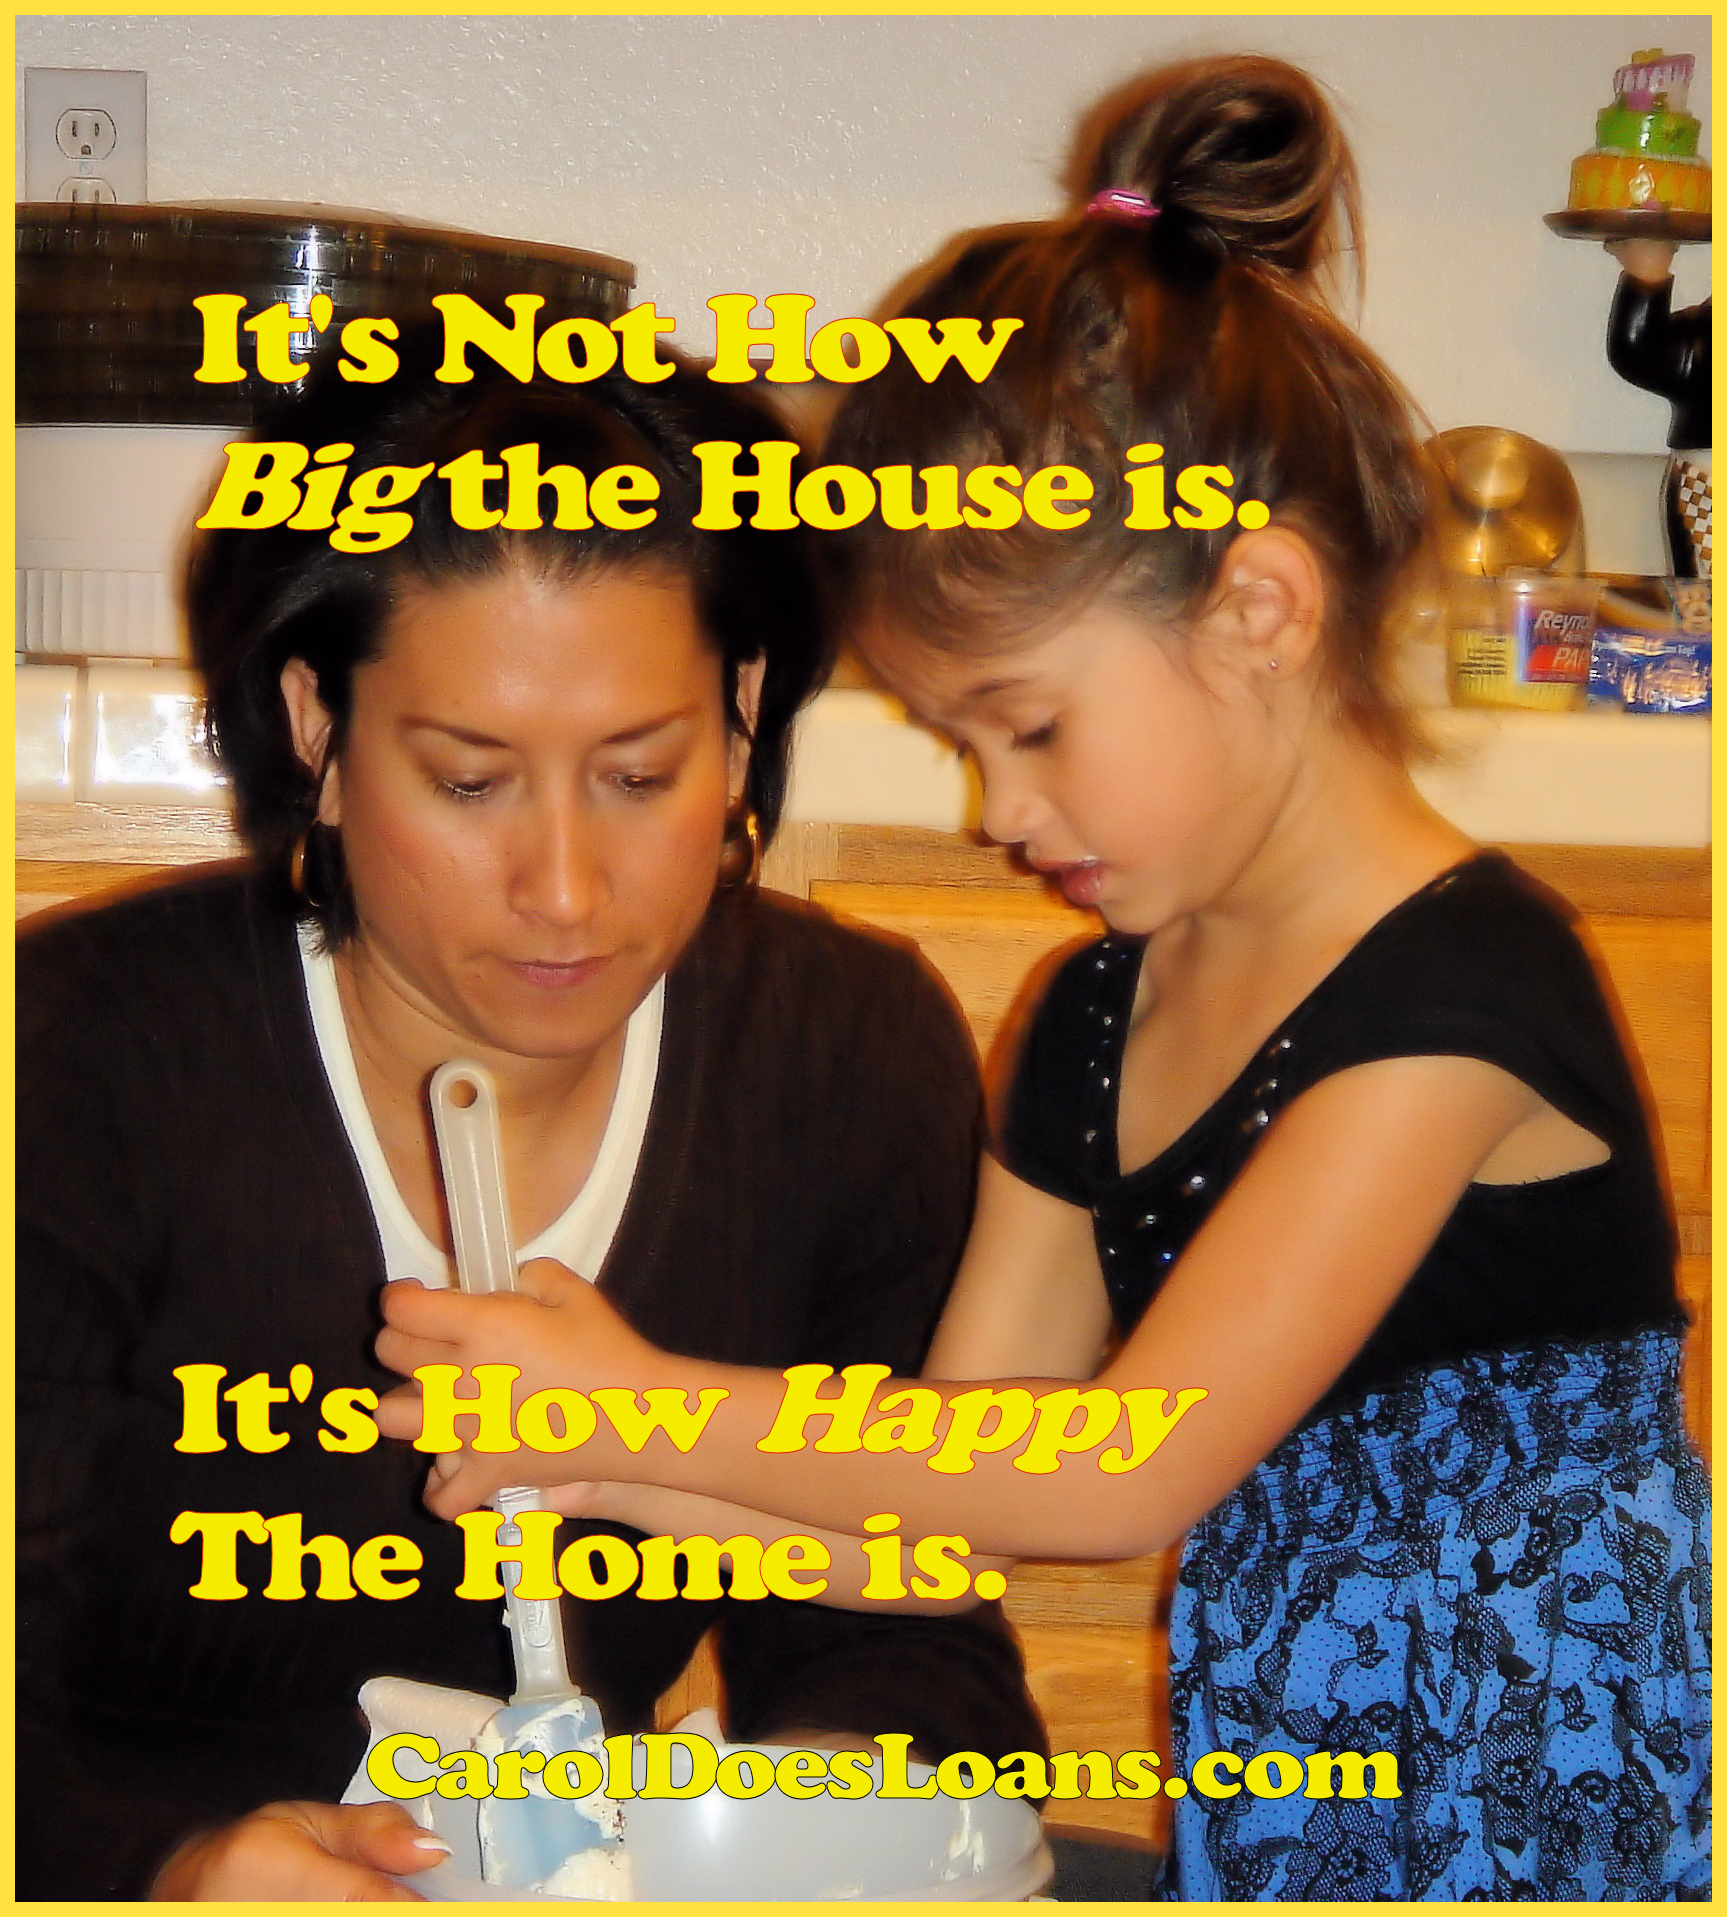 A big mortgage will not guarantee a happy home